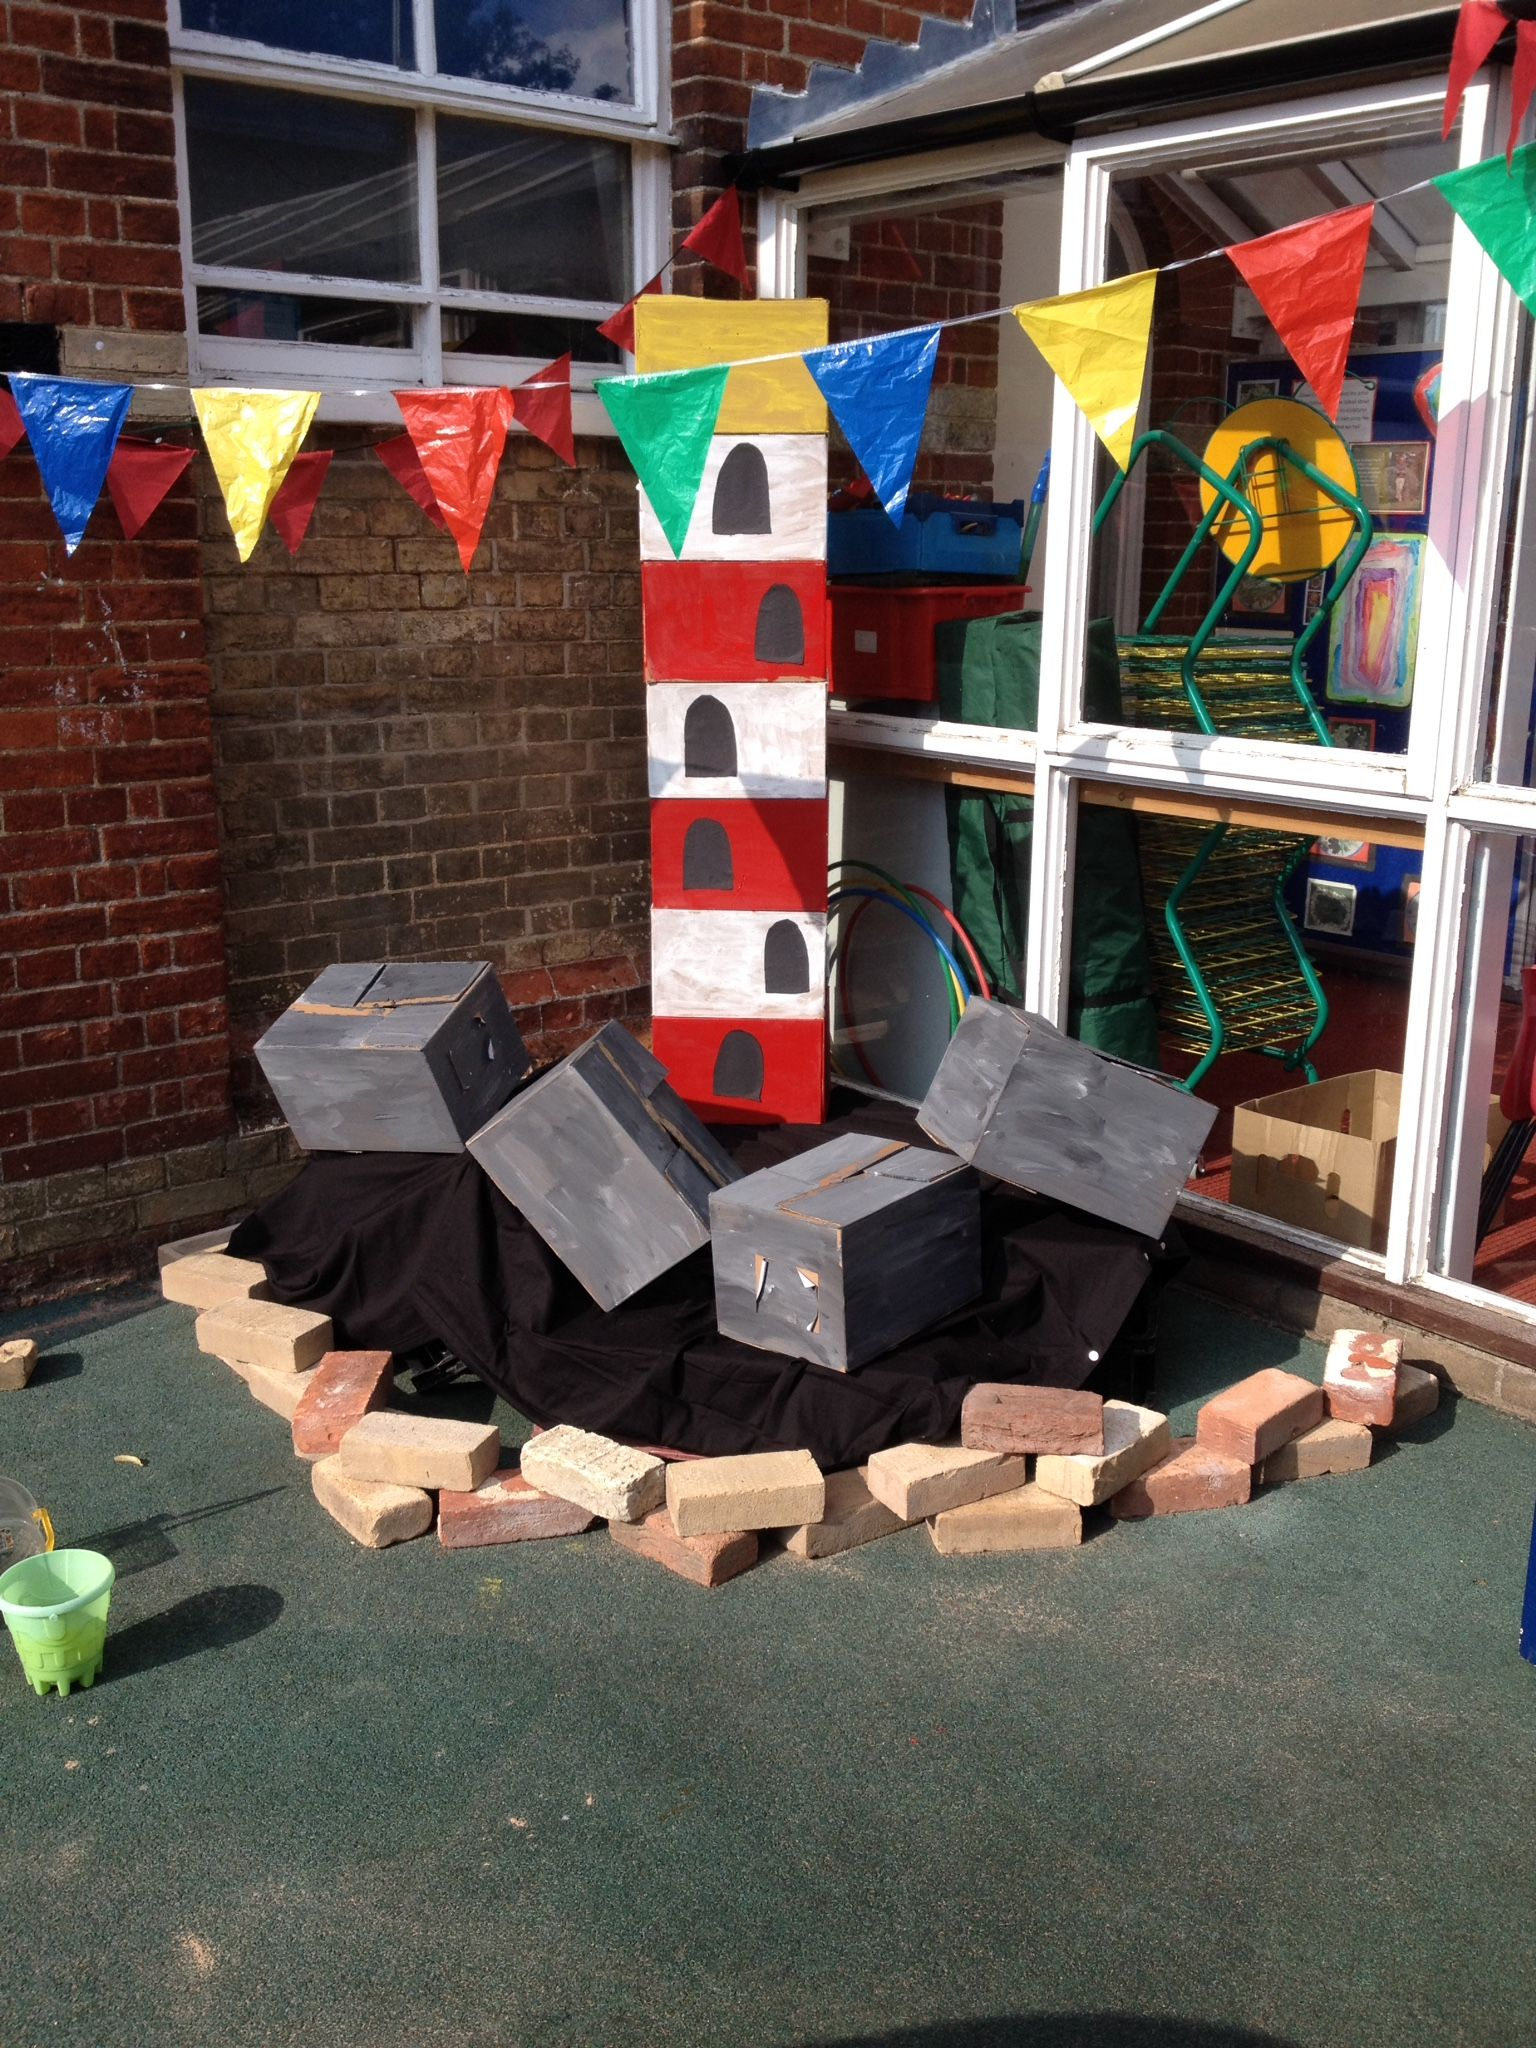 Lighthouse Based On The Book Lighthouse Keeper S Lunch Role Play Area